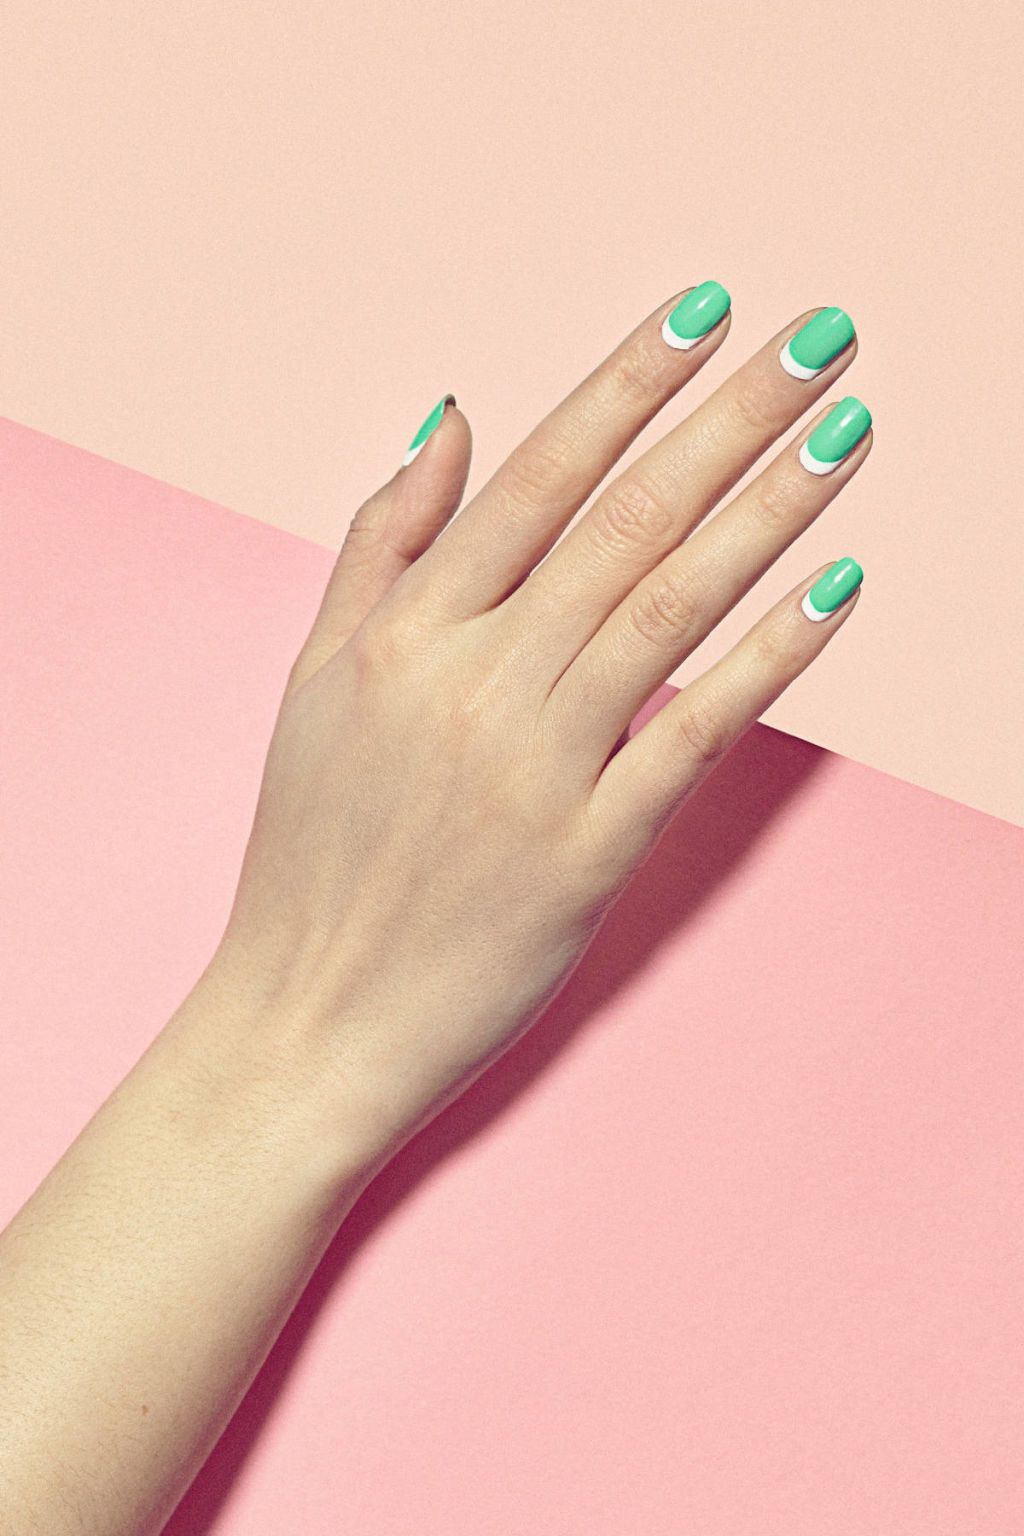 """It's the new way to do a moon manicure,"" says Julie Kandalec, Creative Director of Paintbox. And there's a reason why it's more visually exciting: ""The white base makes the other bright colors really pop from the contrast, and the moon shape comes to a super chic point at the corners (instead of a curve which can read too precious),"" she explains.  WHY YOU'LL LOVE IT: ""This look is for the woman who likes a subtle, chic contrast."" says Kandalec. THE PAINTBOX HOW TO: 1. Apply a white base…"